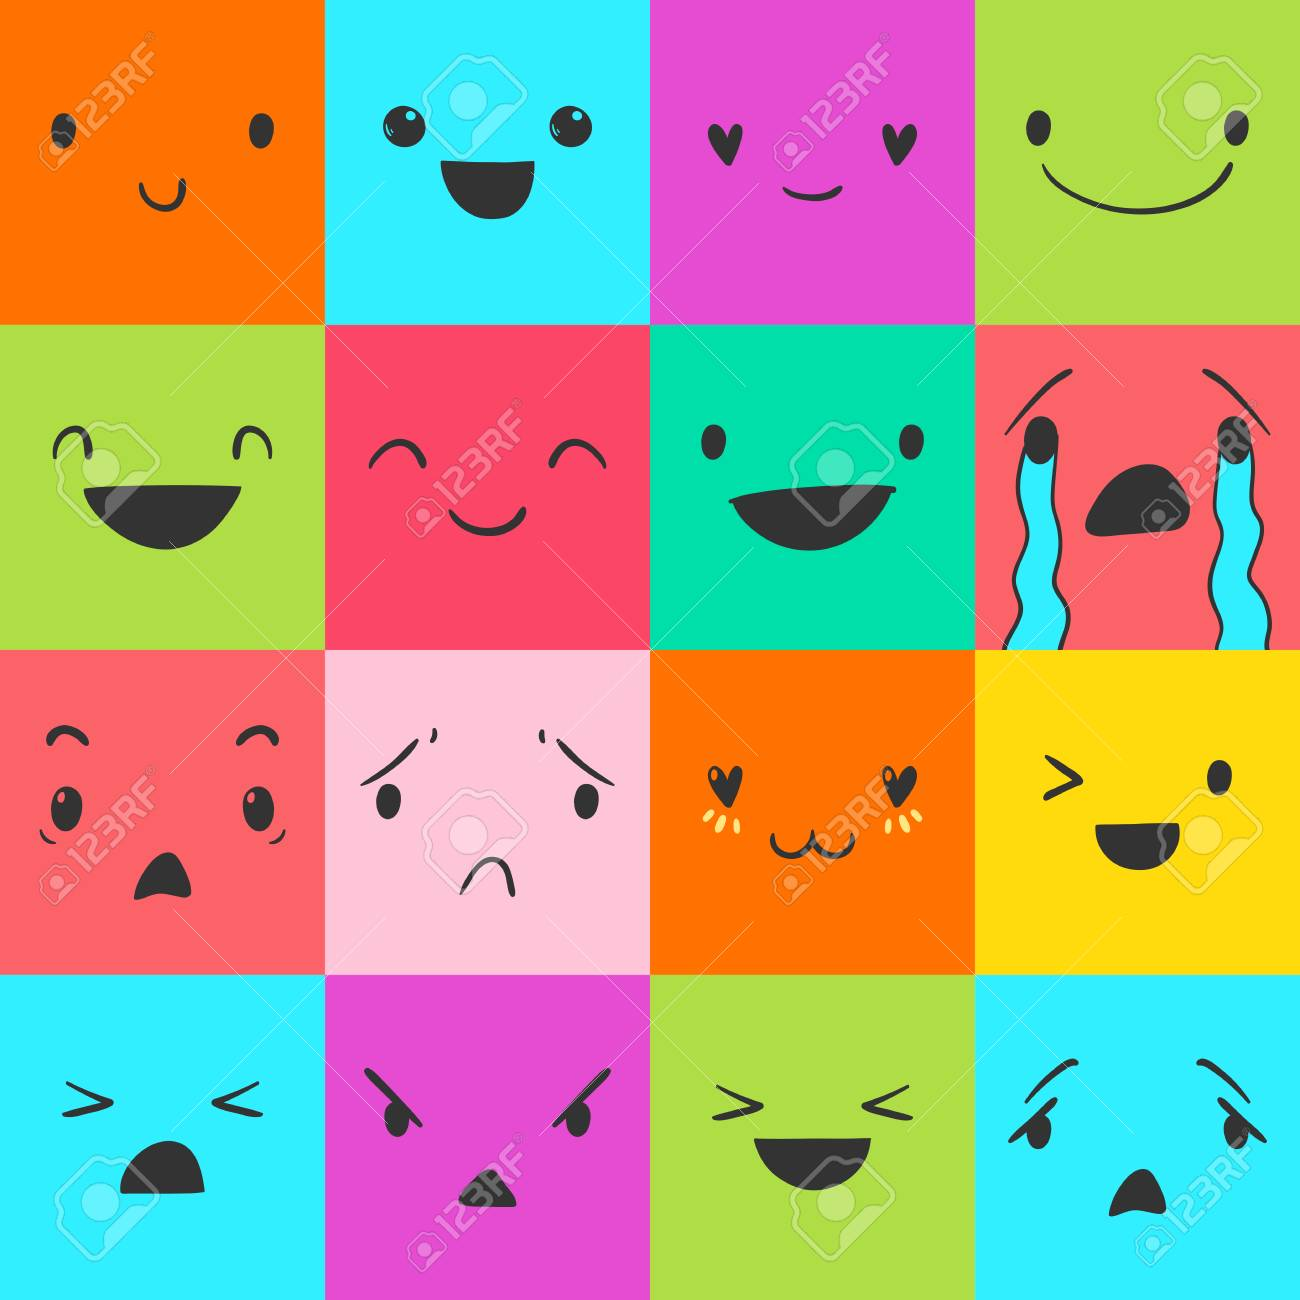 Square emoticons with different emotions, vector set of various hand-drawn  cute expressions,